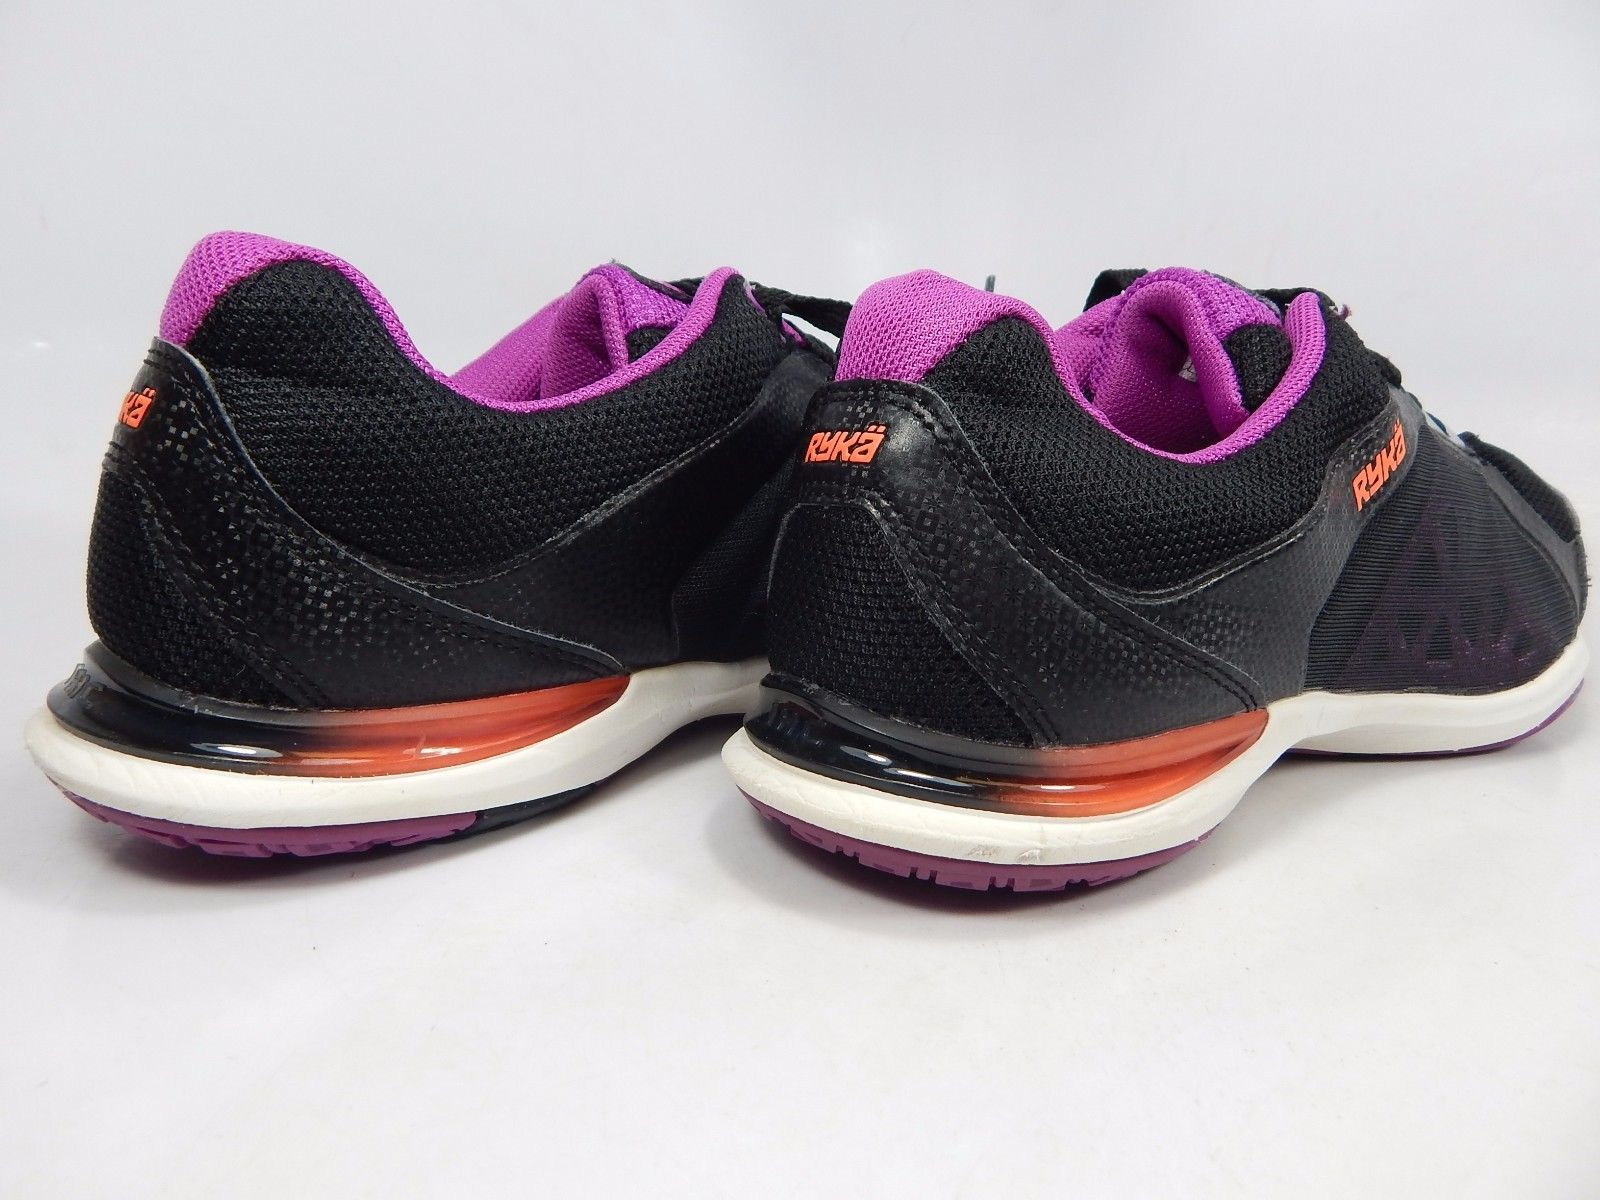 Ryka Exertion Women's Running Shoes Size US 11 M (B) EU 43 Black Purple